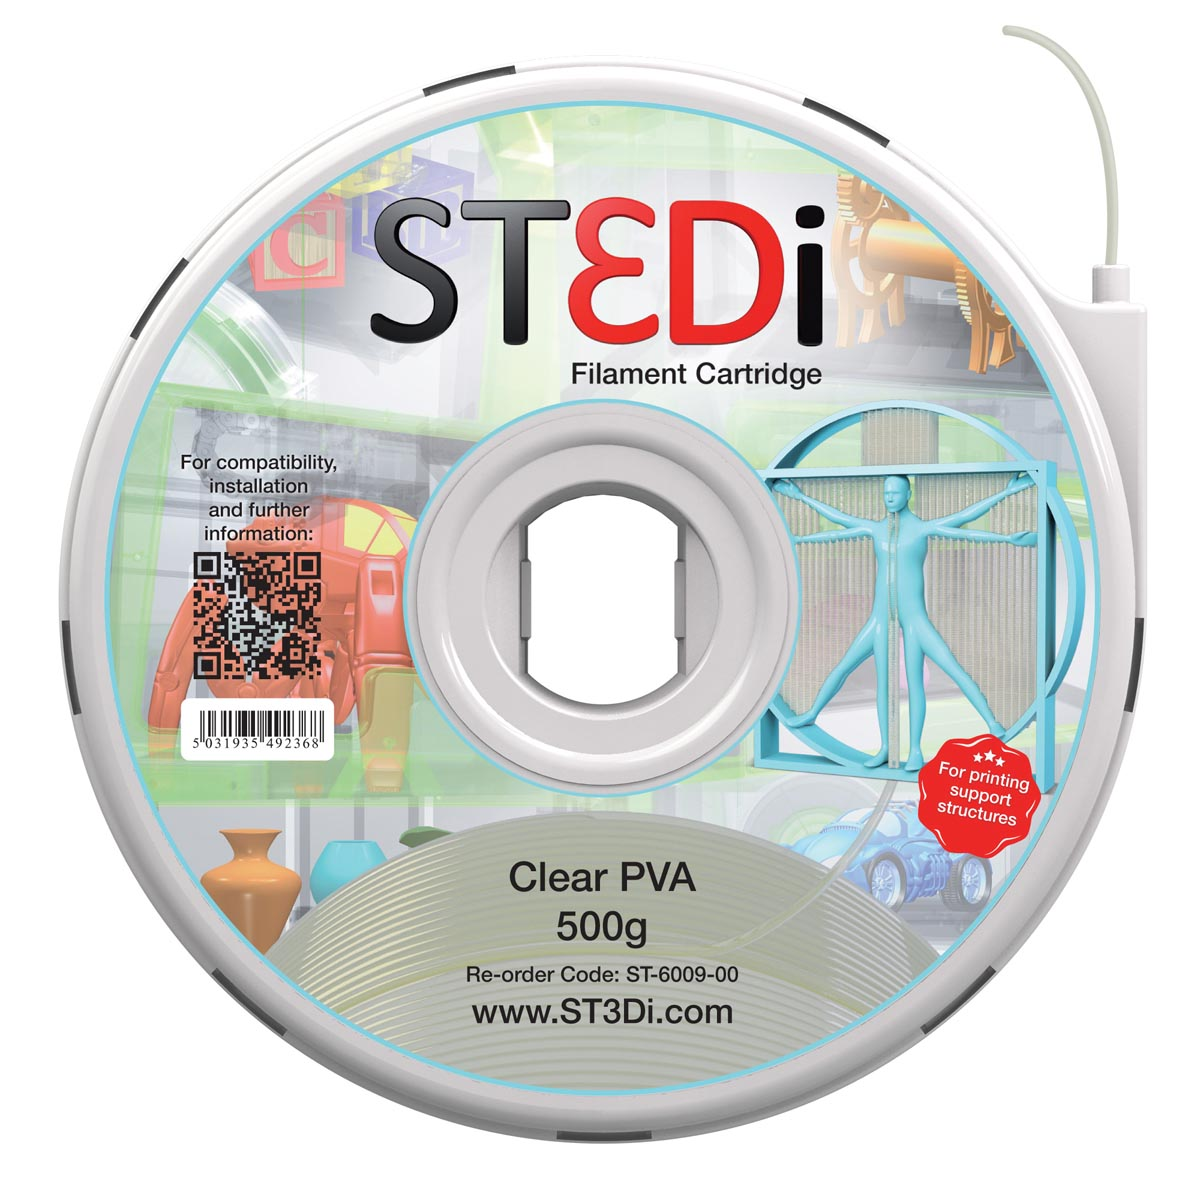 St3di cartridge pva 500g naturel voor st3di printer model smart pro 280